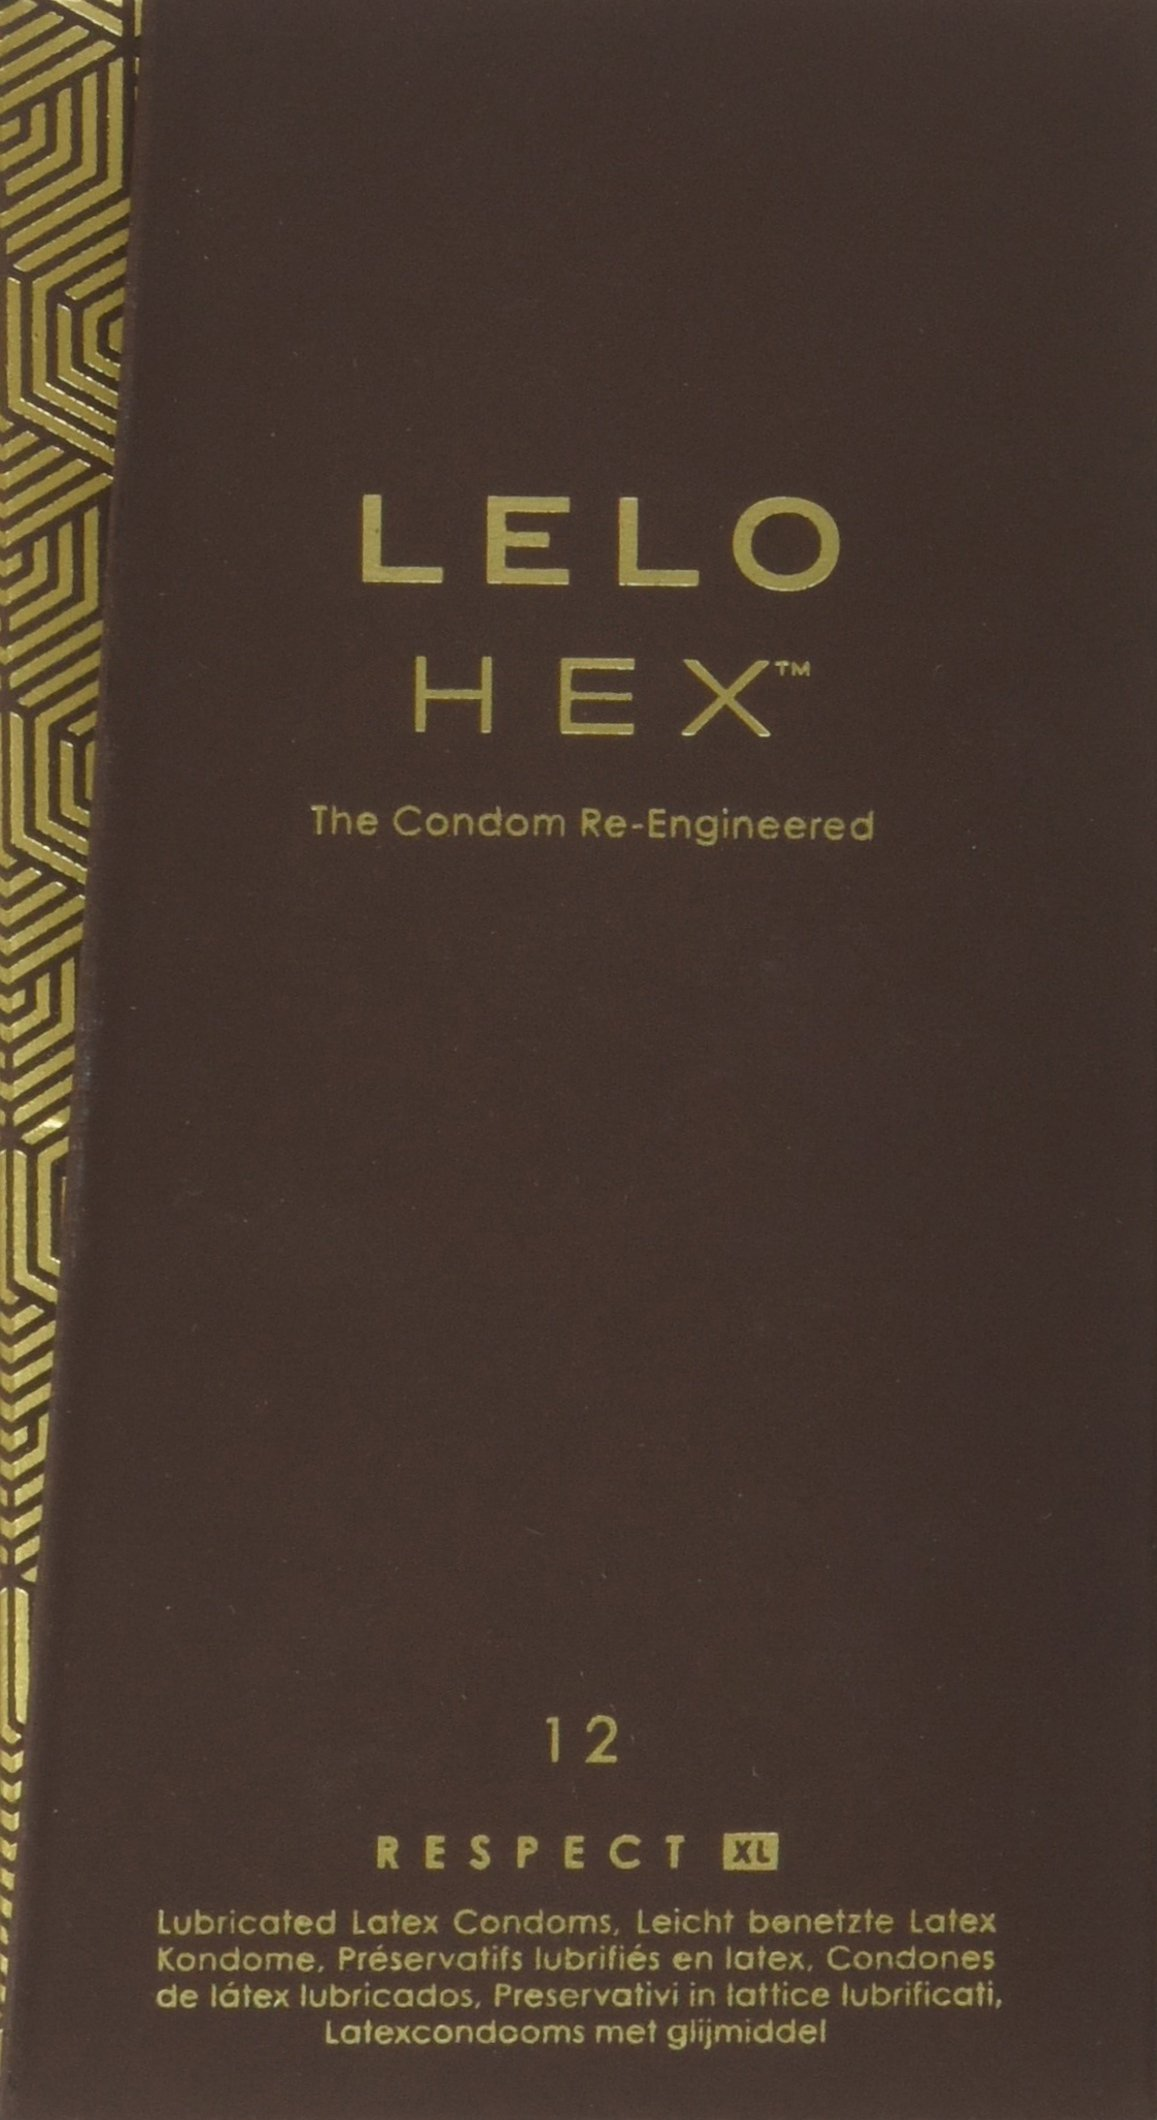 LELO HEX Respect, XL Size, Luxury Condoms with Unique Hexagonal Structure, Thin Yet Strong Latex Condom, Lubricated (12 pack)